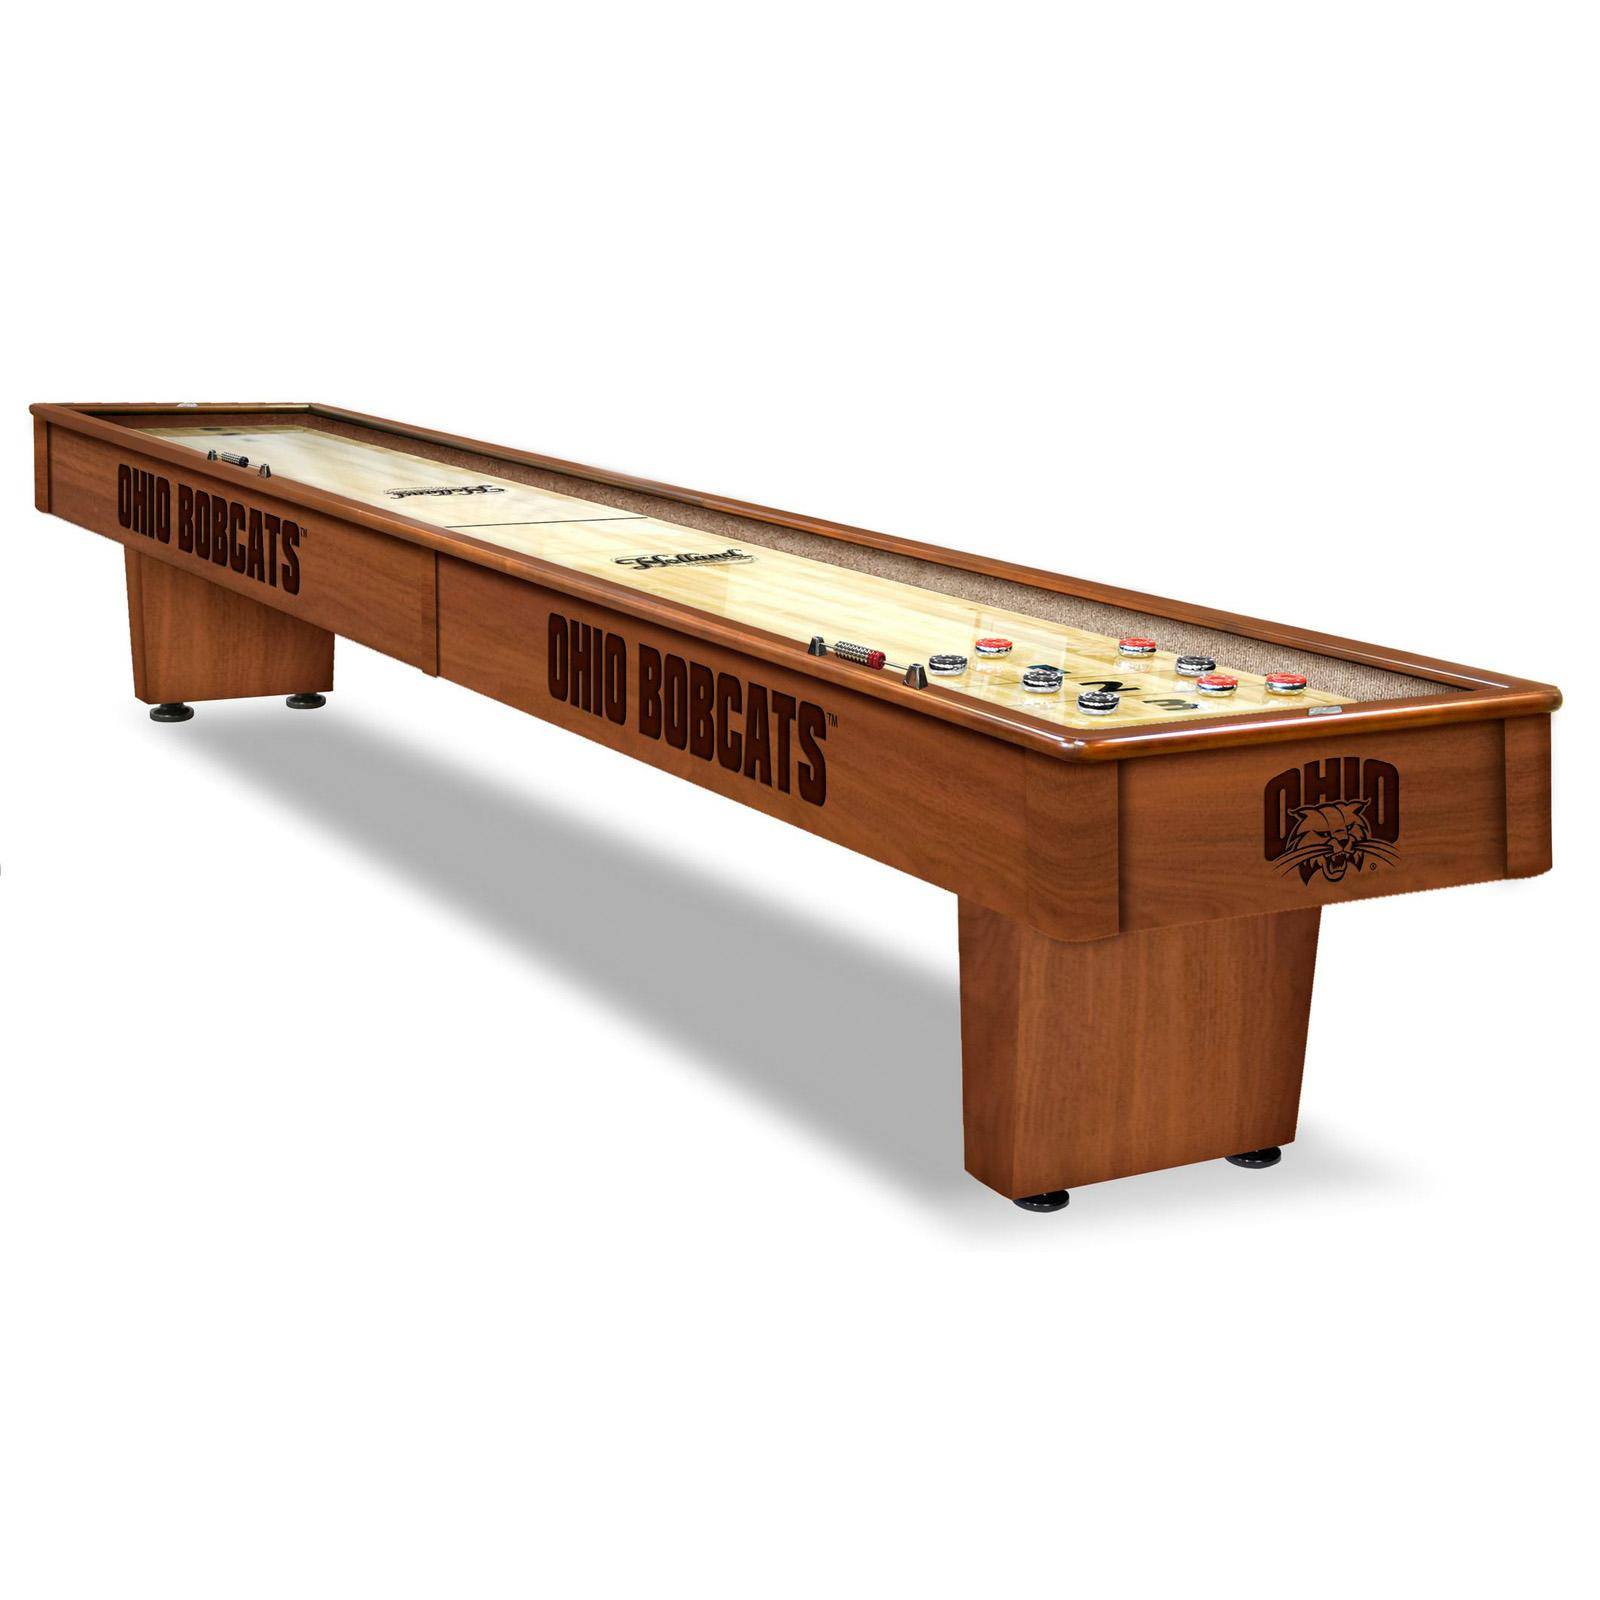 Holland 12 ft. College Shuffleboard Table - SB12CHRDUNIVOH